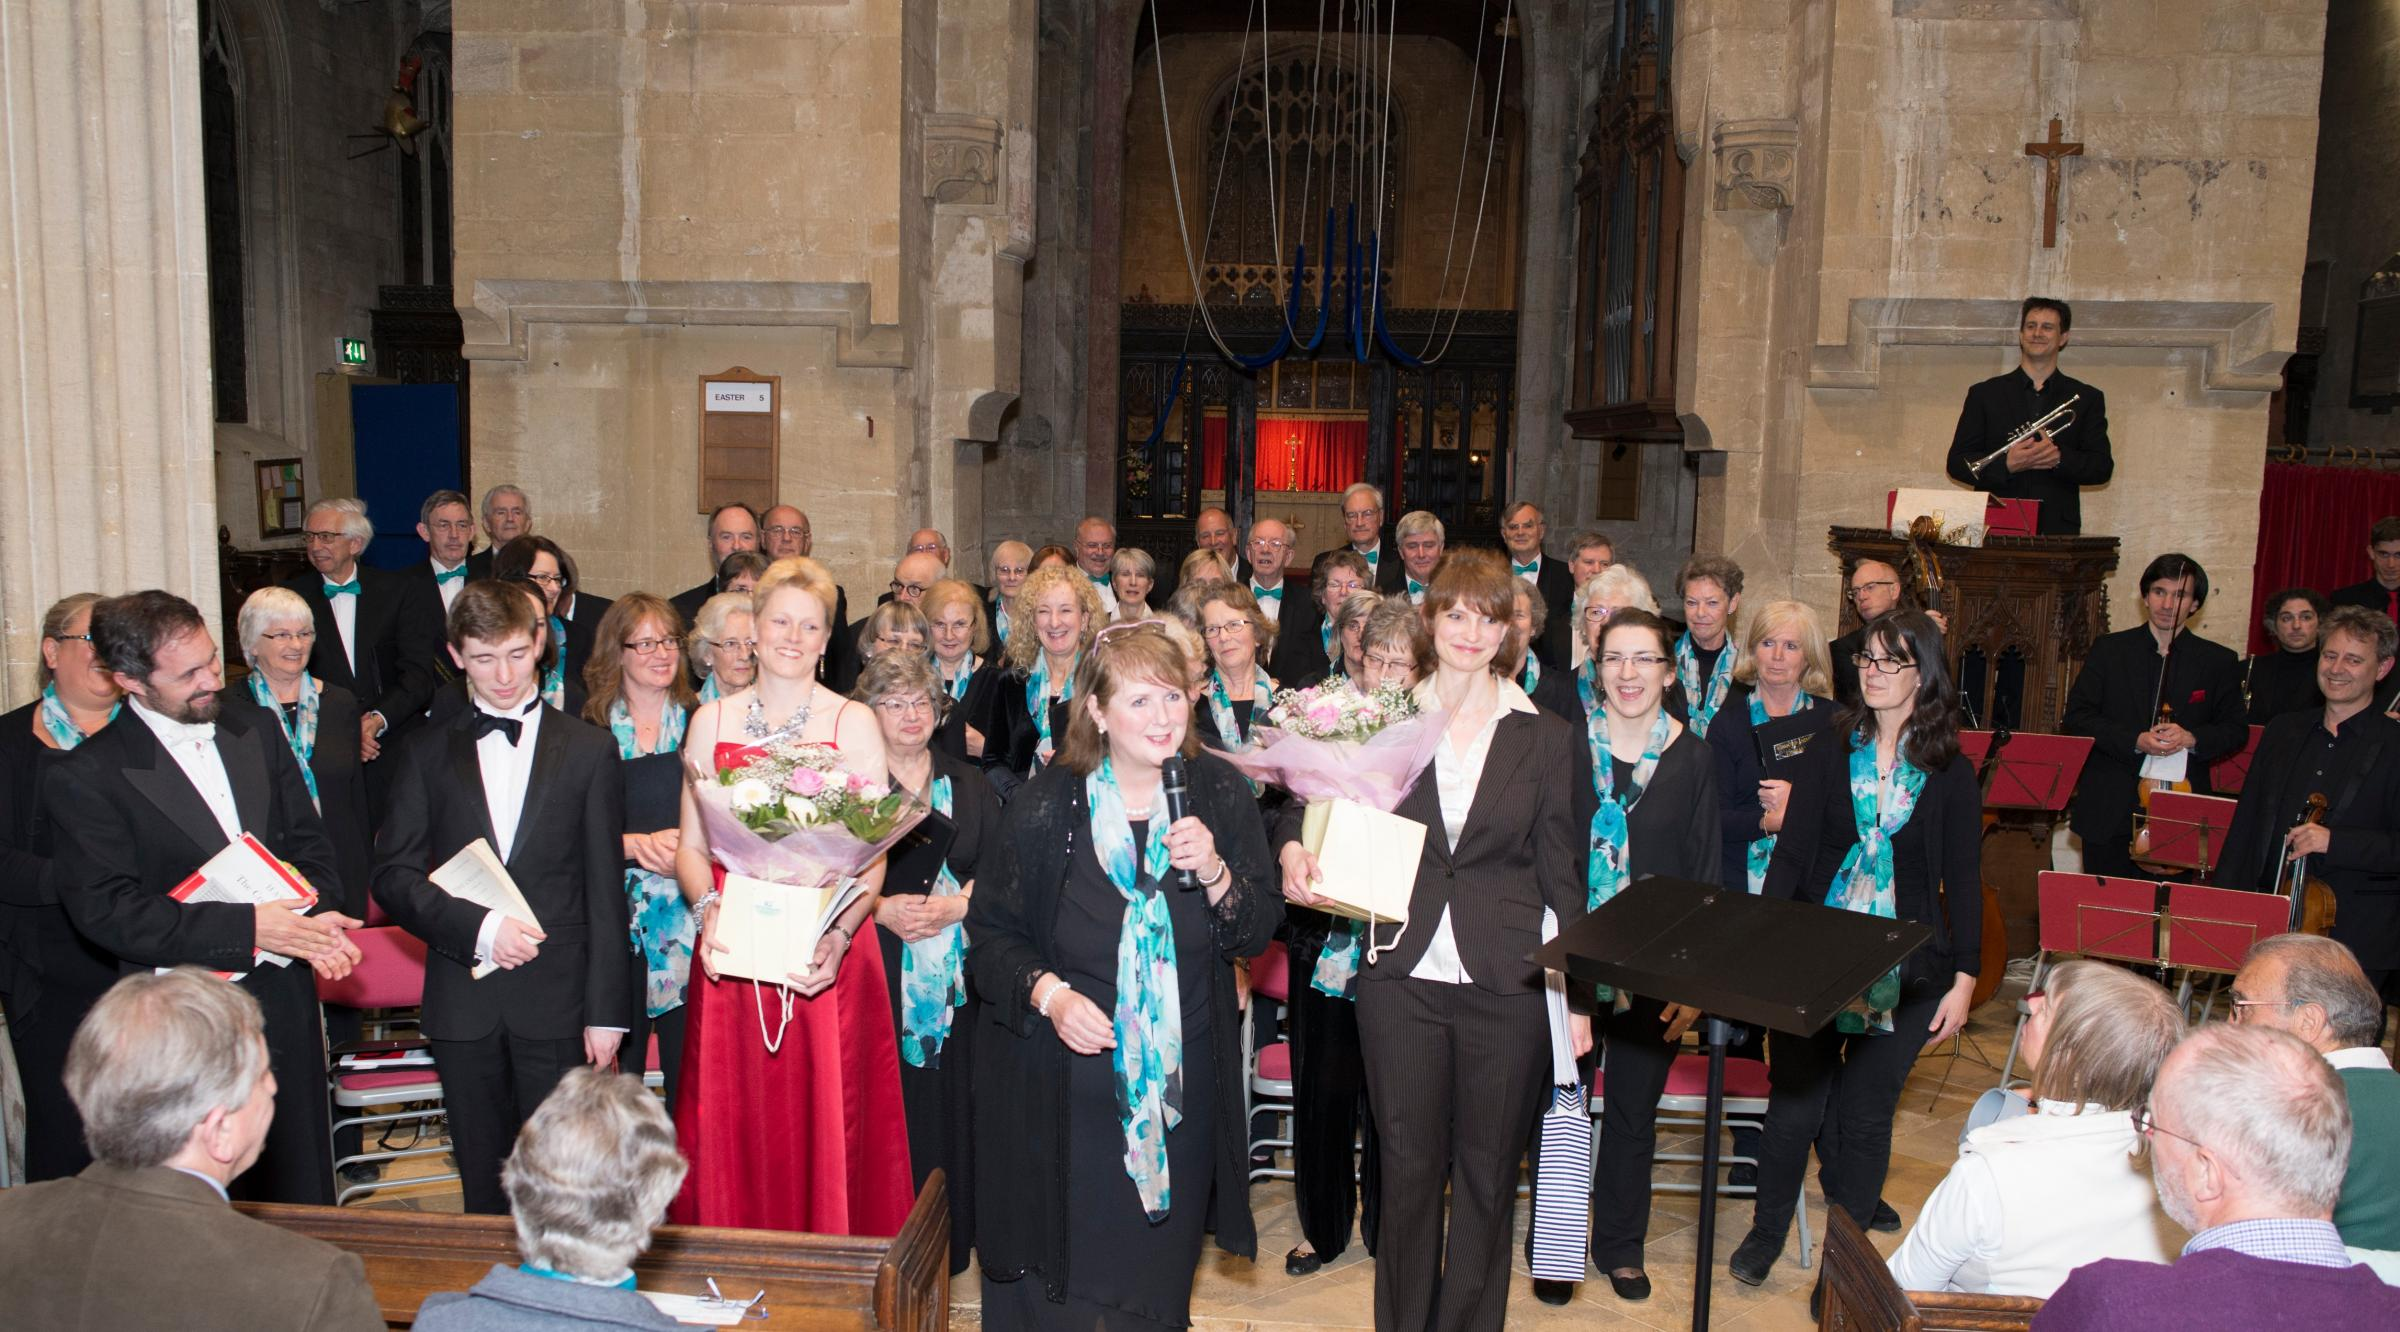 Fairford and District Choral Society